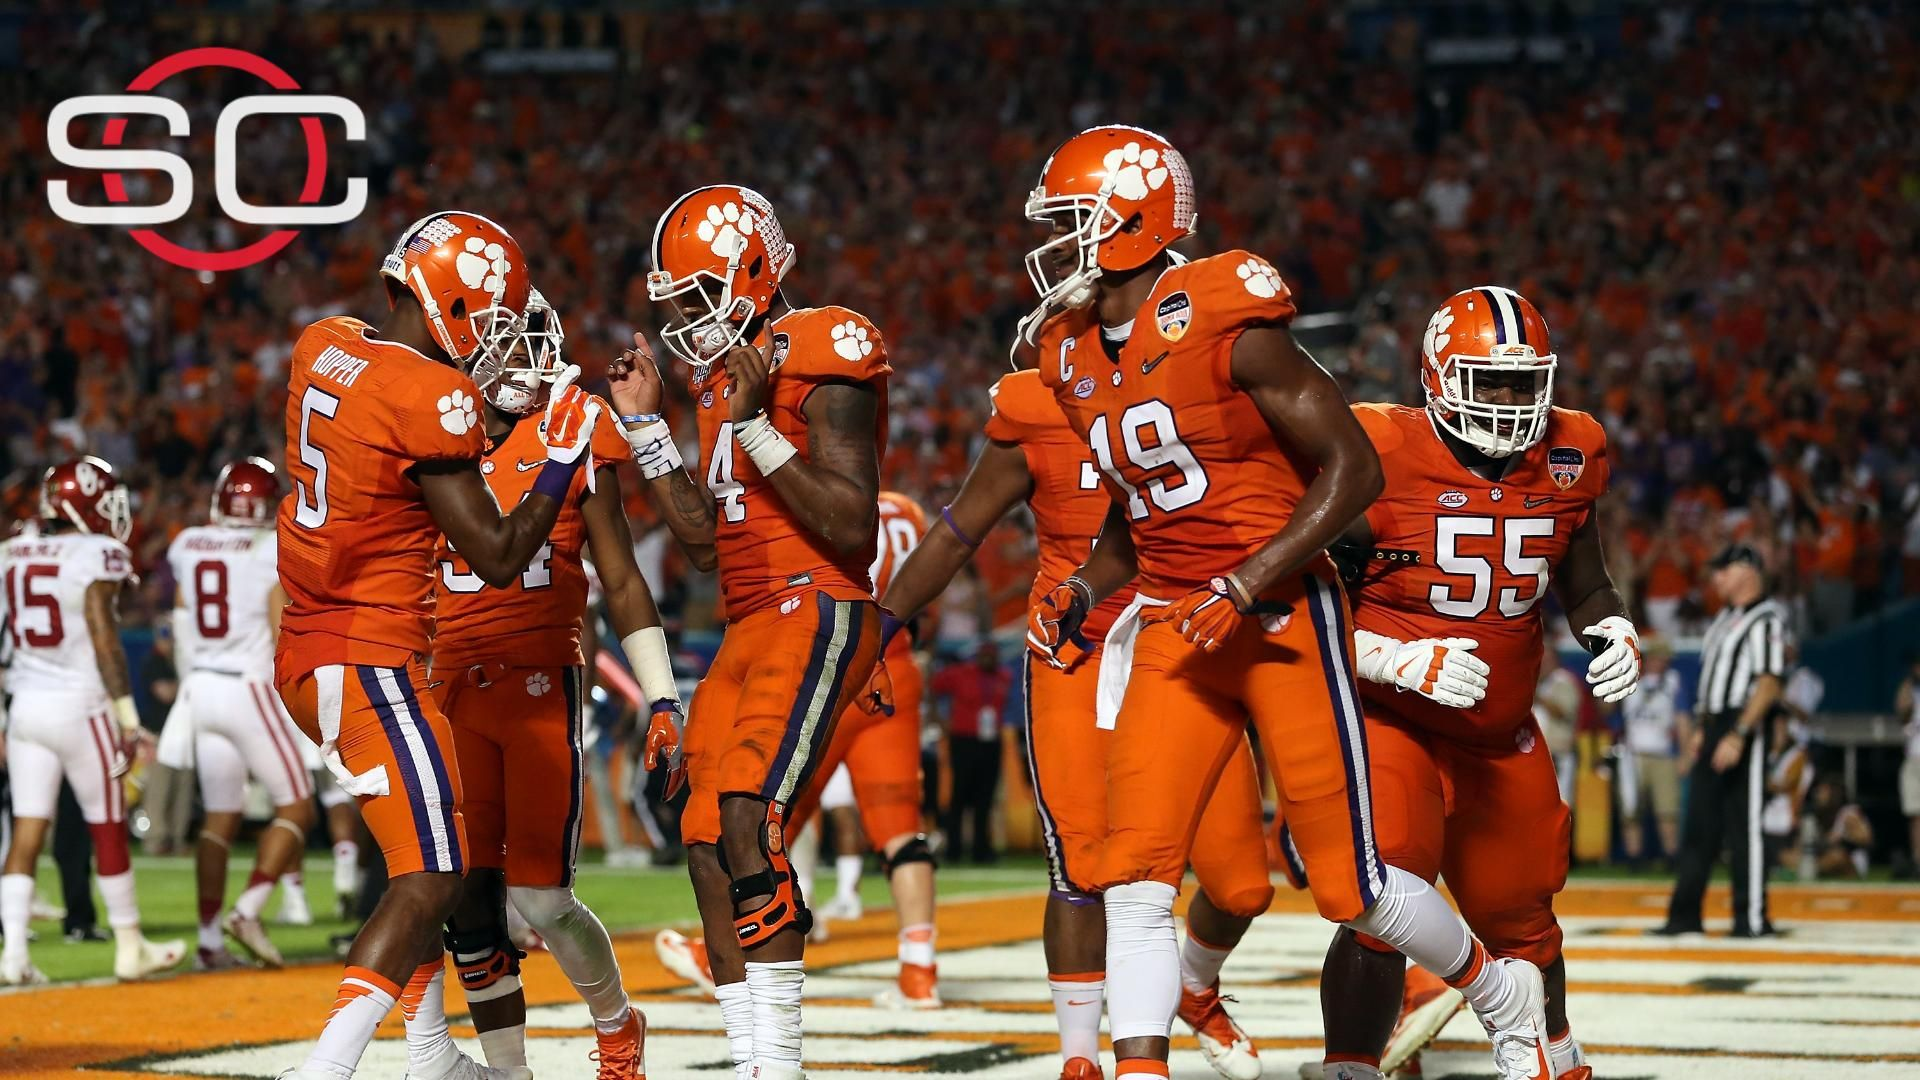 Clemson rolls over Oklahoma, advances to CFP title game